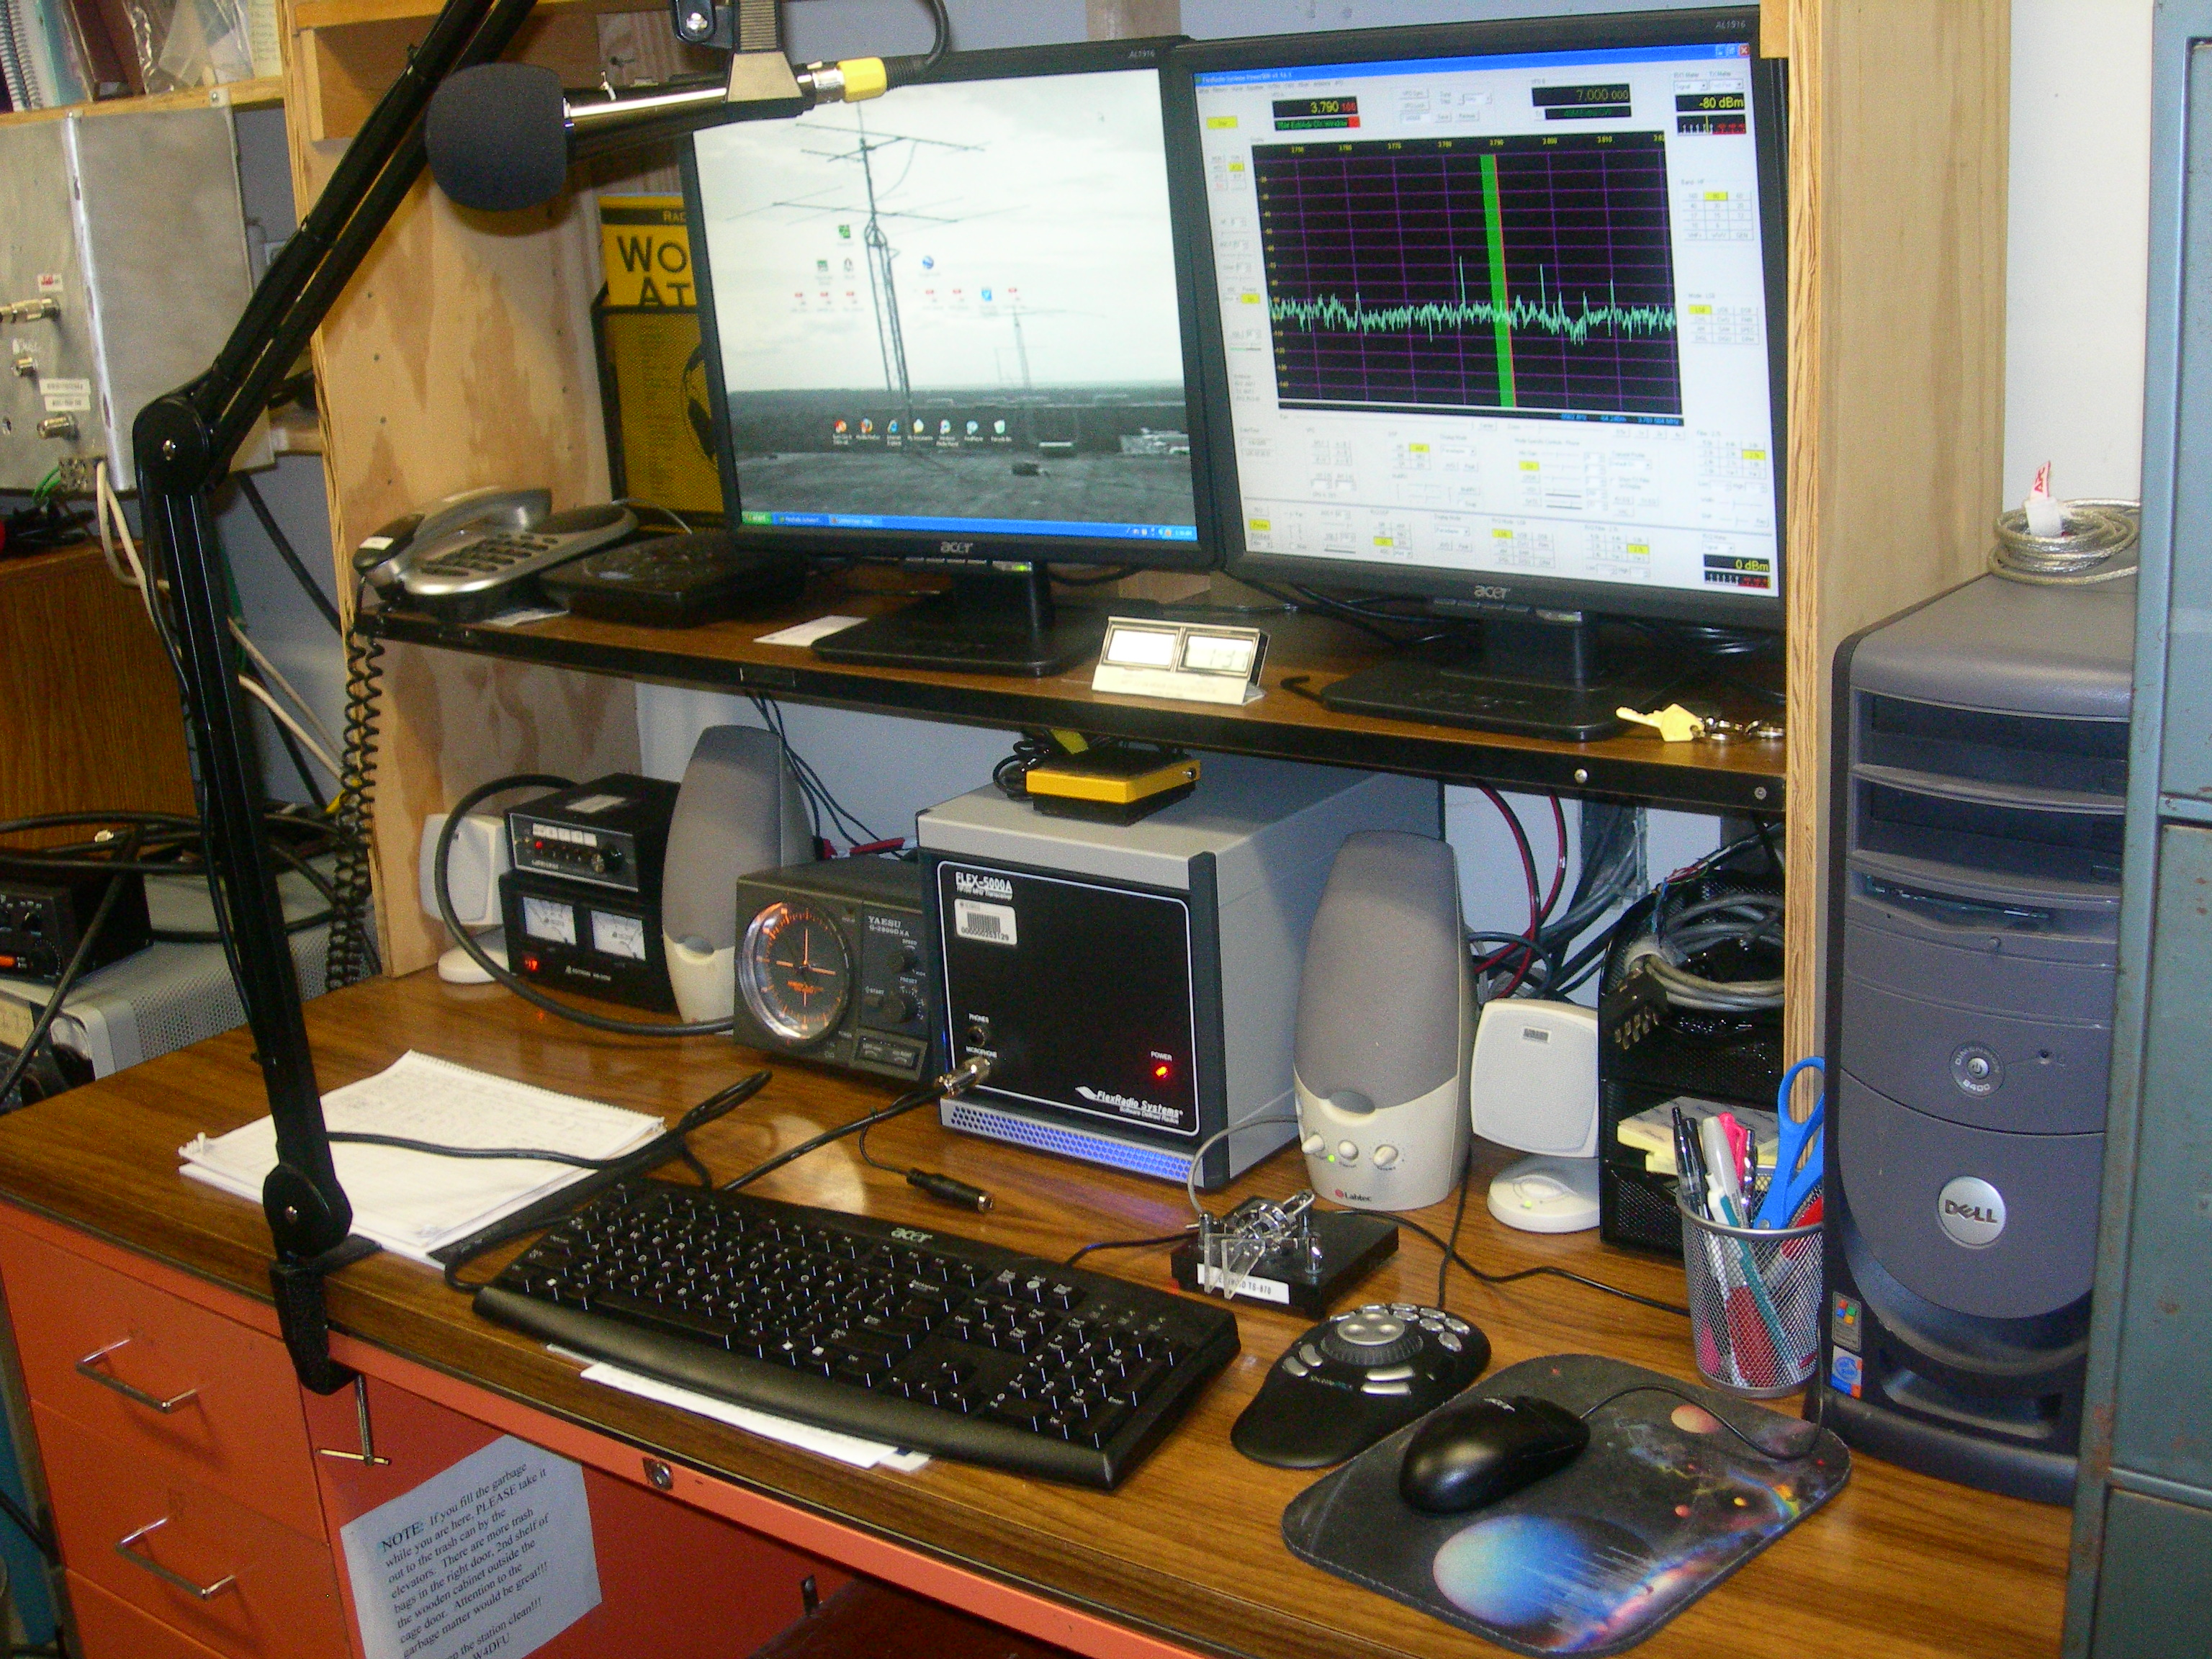 Operating HF1 at the Gator Amateur Radio Club (W4DFU) at the University of Florida, Gainesville